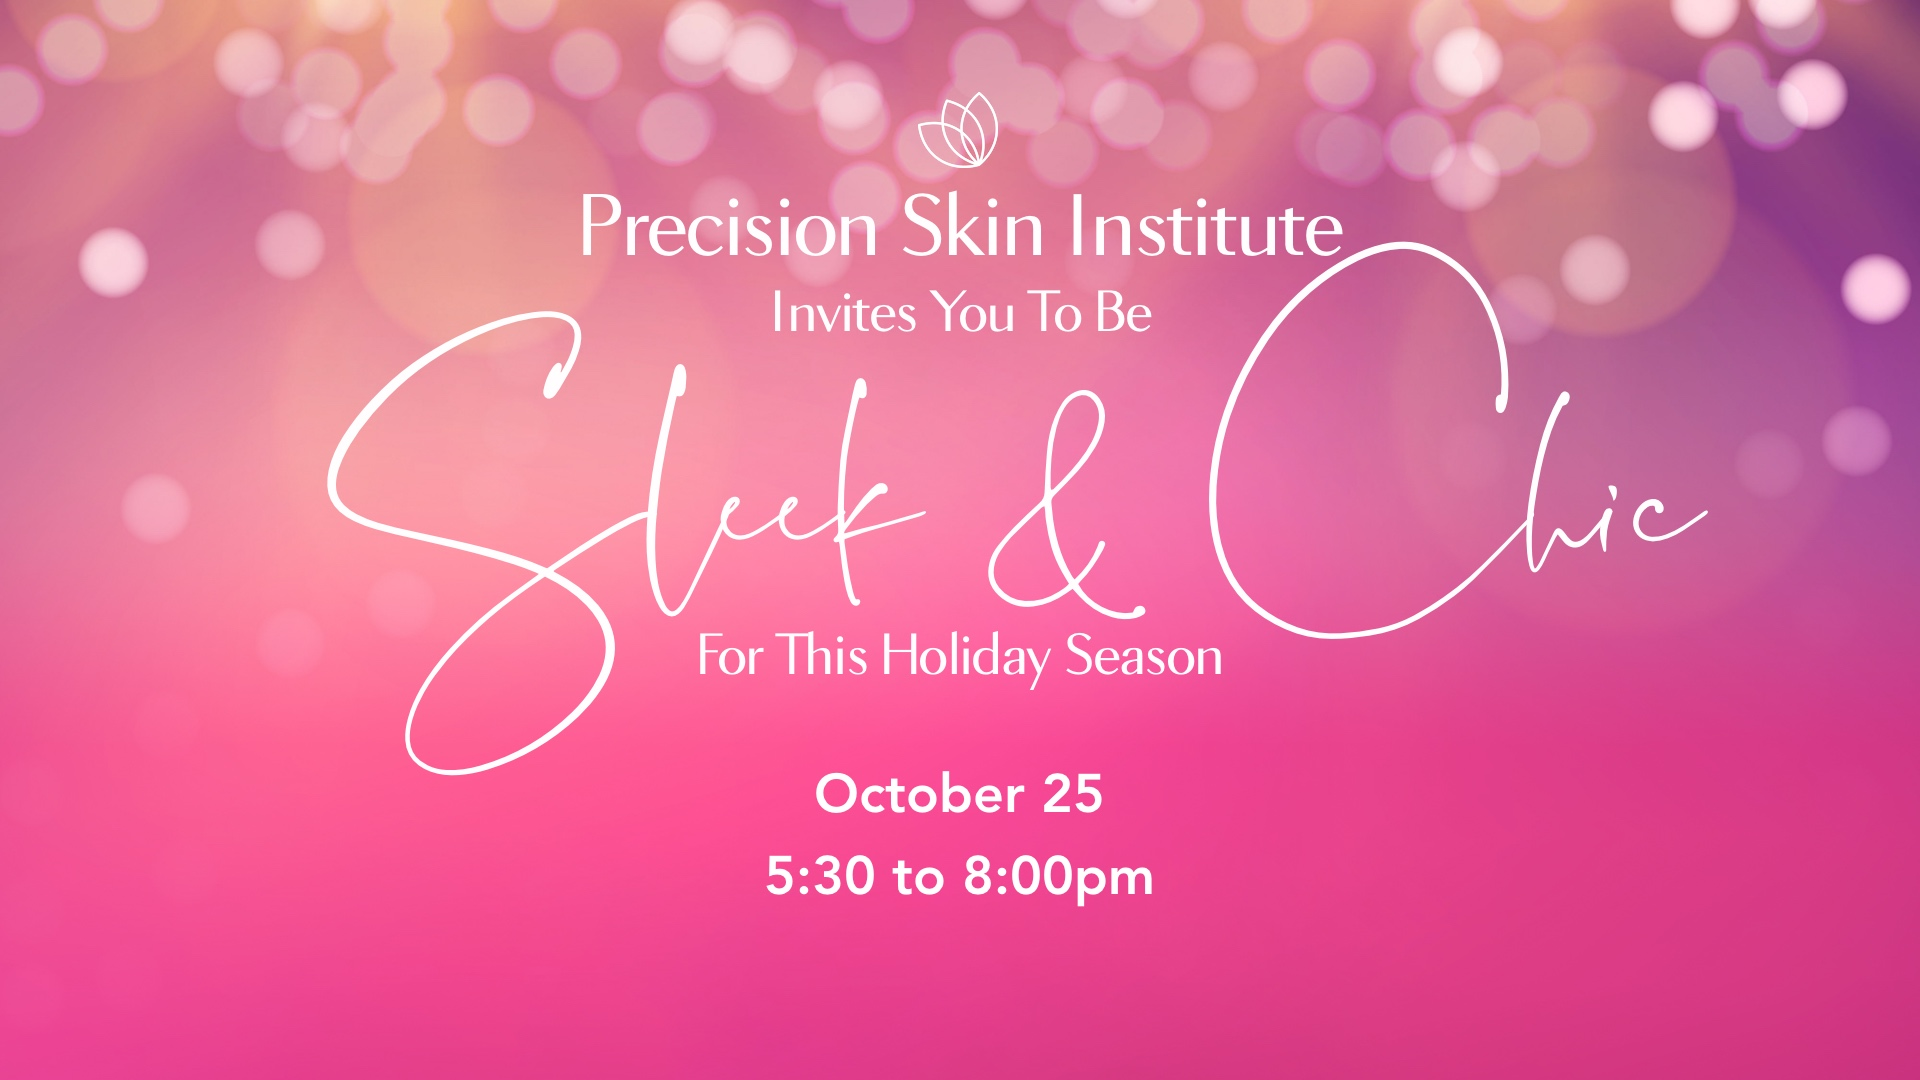 Precision Skin Institute Sleek & Chic Event Featured